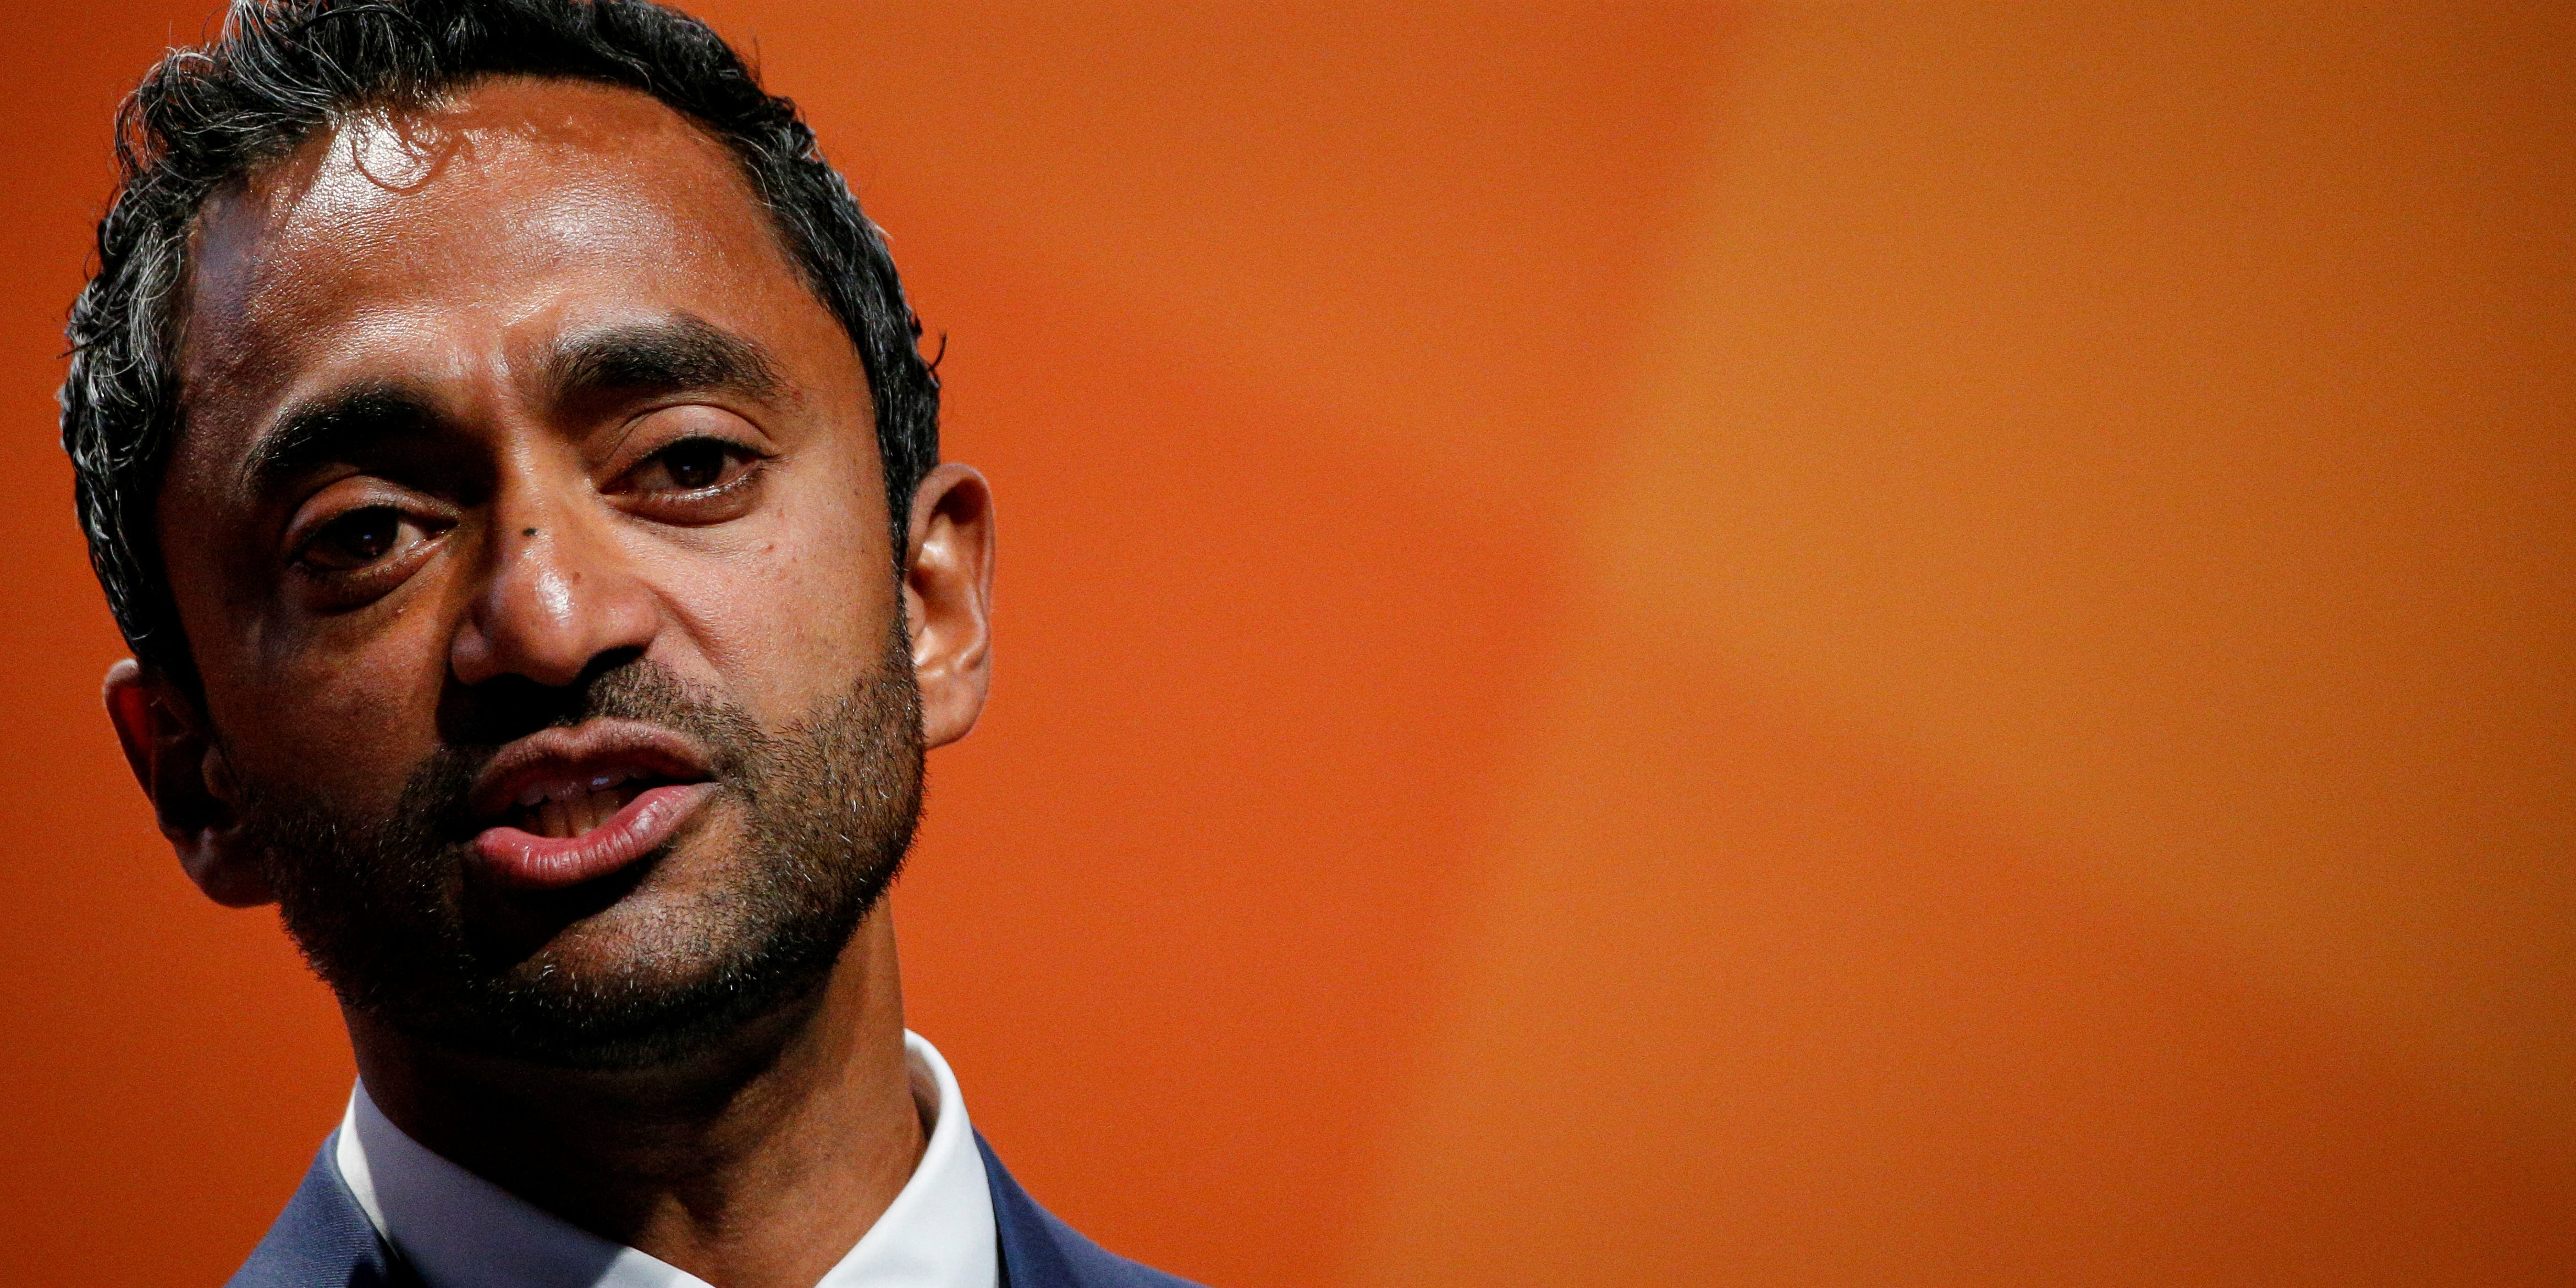 Billionaire Investor Chamath Palihapitiya Headed By Social Capital Spac Has Held Advanced Talks To Merge With Opendur The Report Said